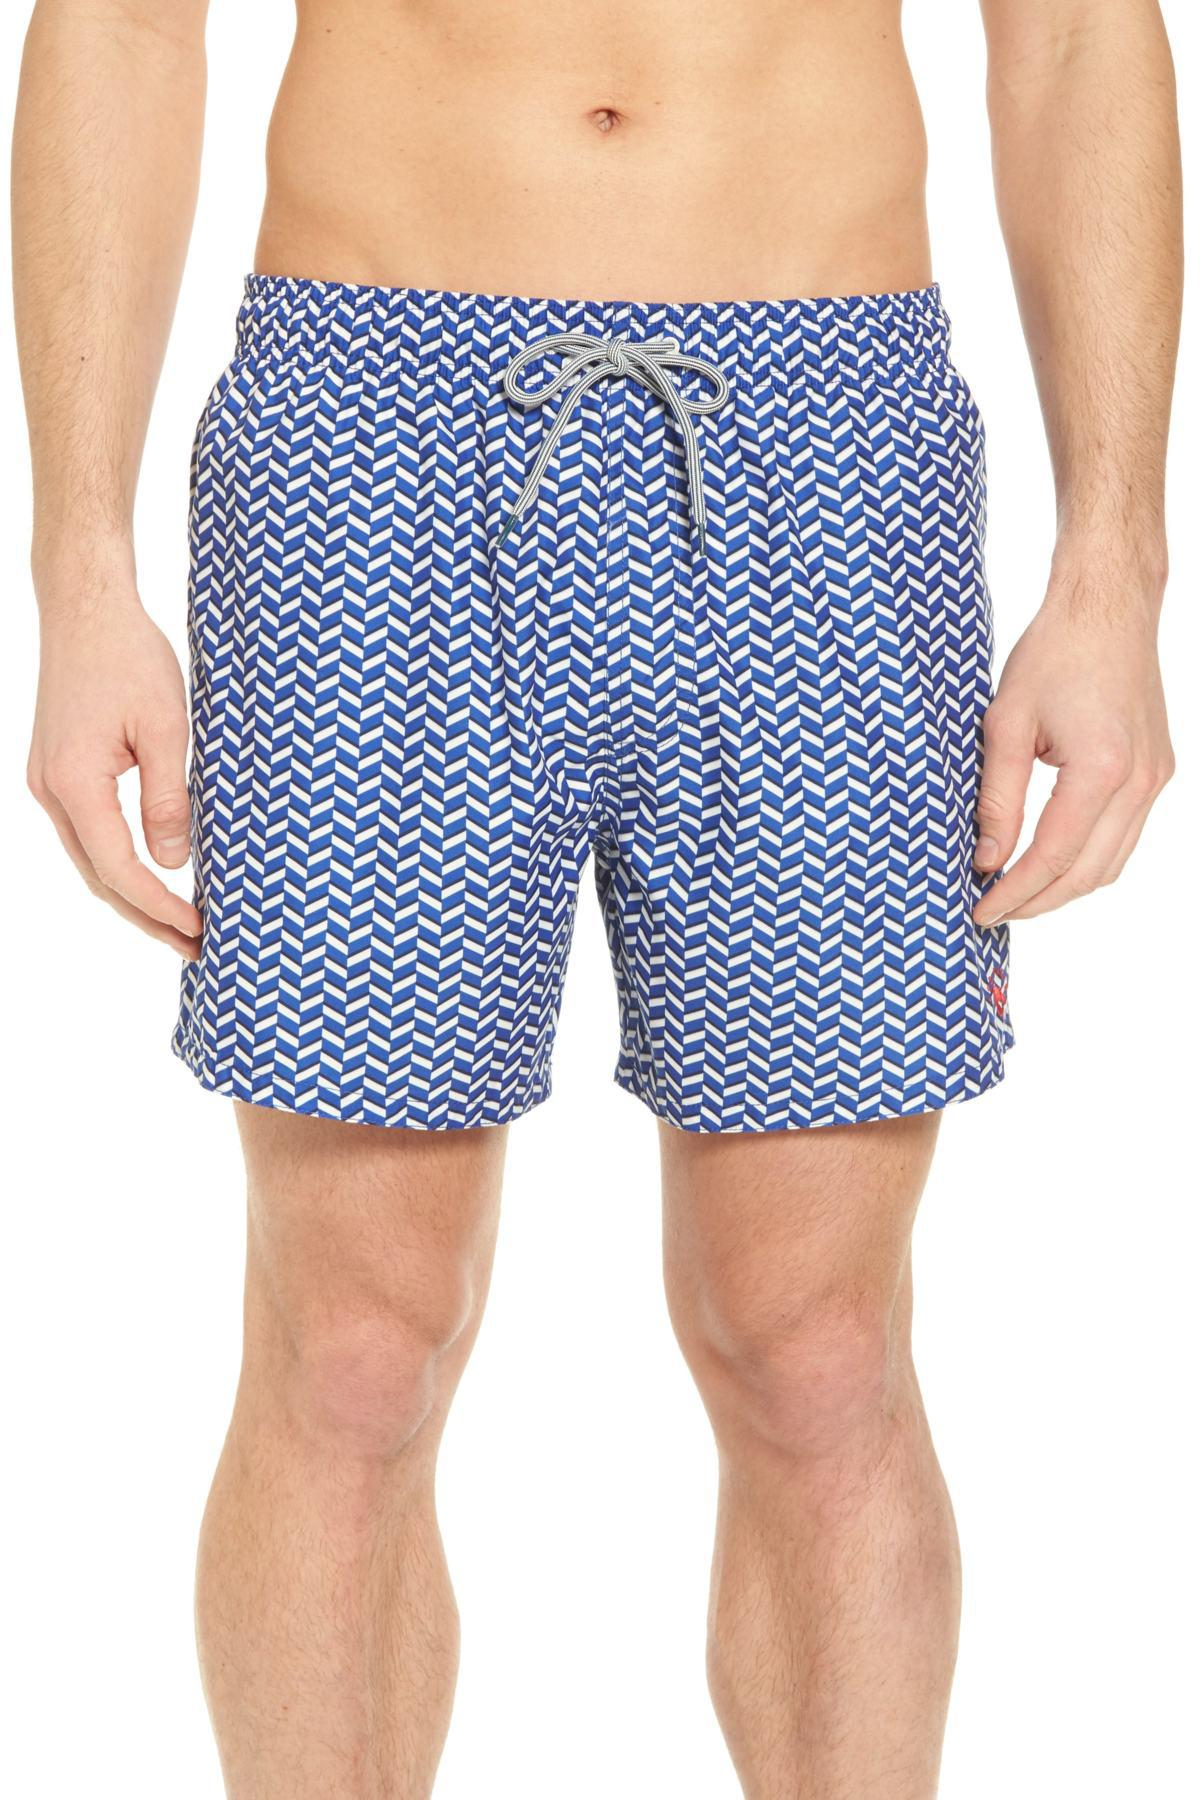 a493725f8fbe93 Lyst - Ted Baker Caven Geo Print Swim Trunks in Blue for Men - Save ...